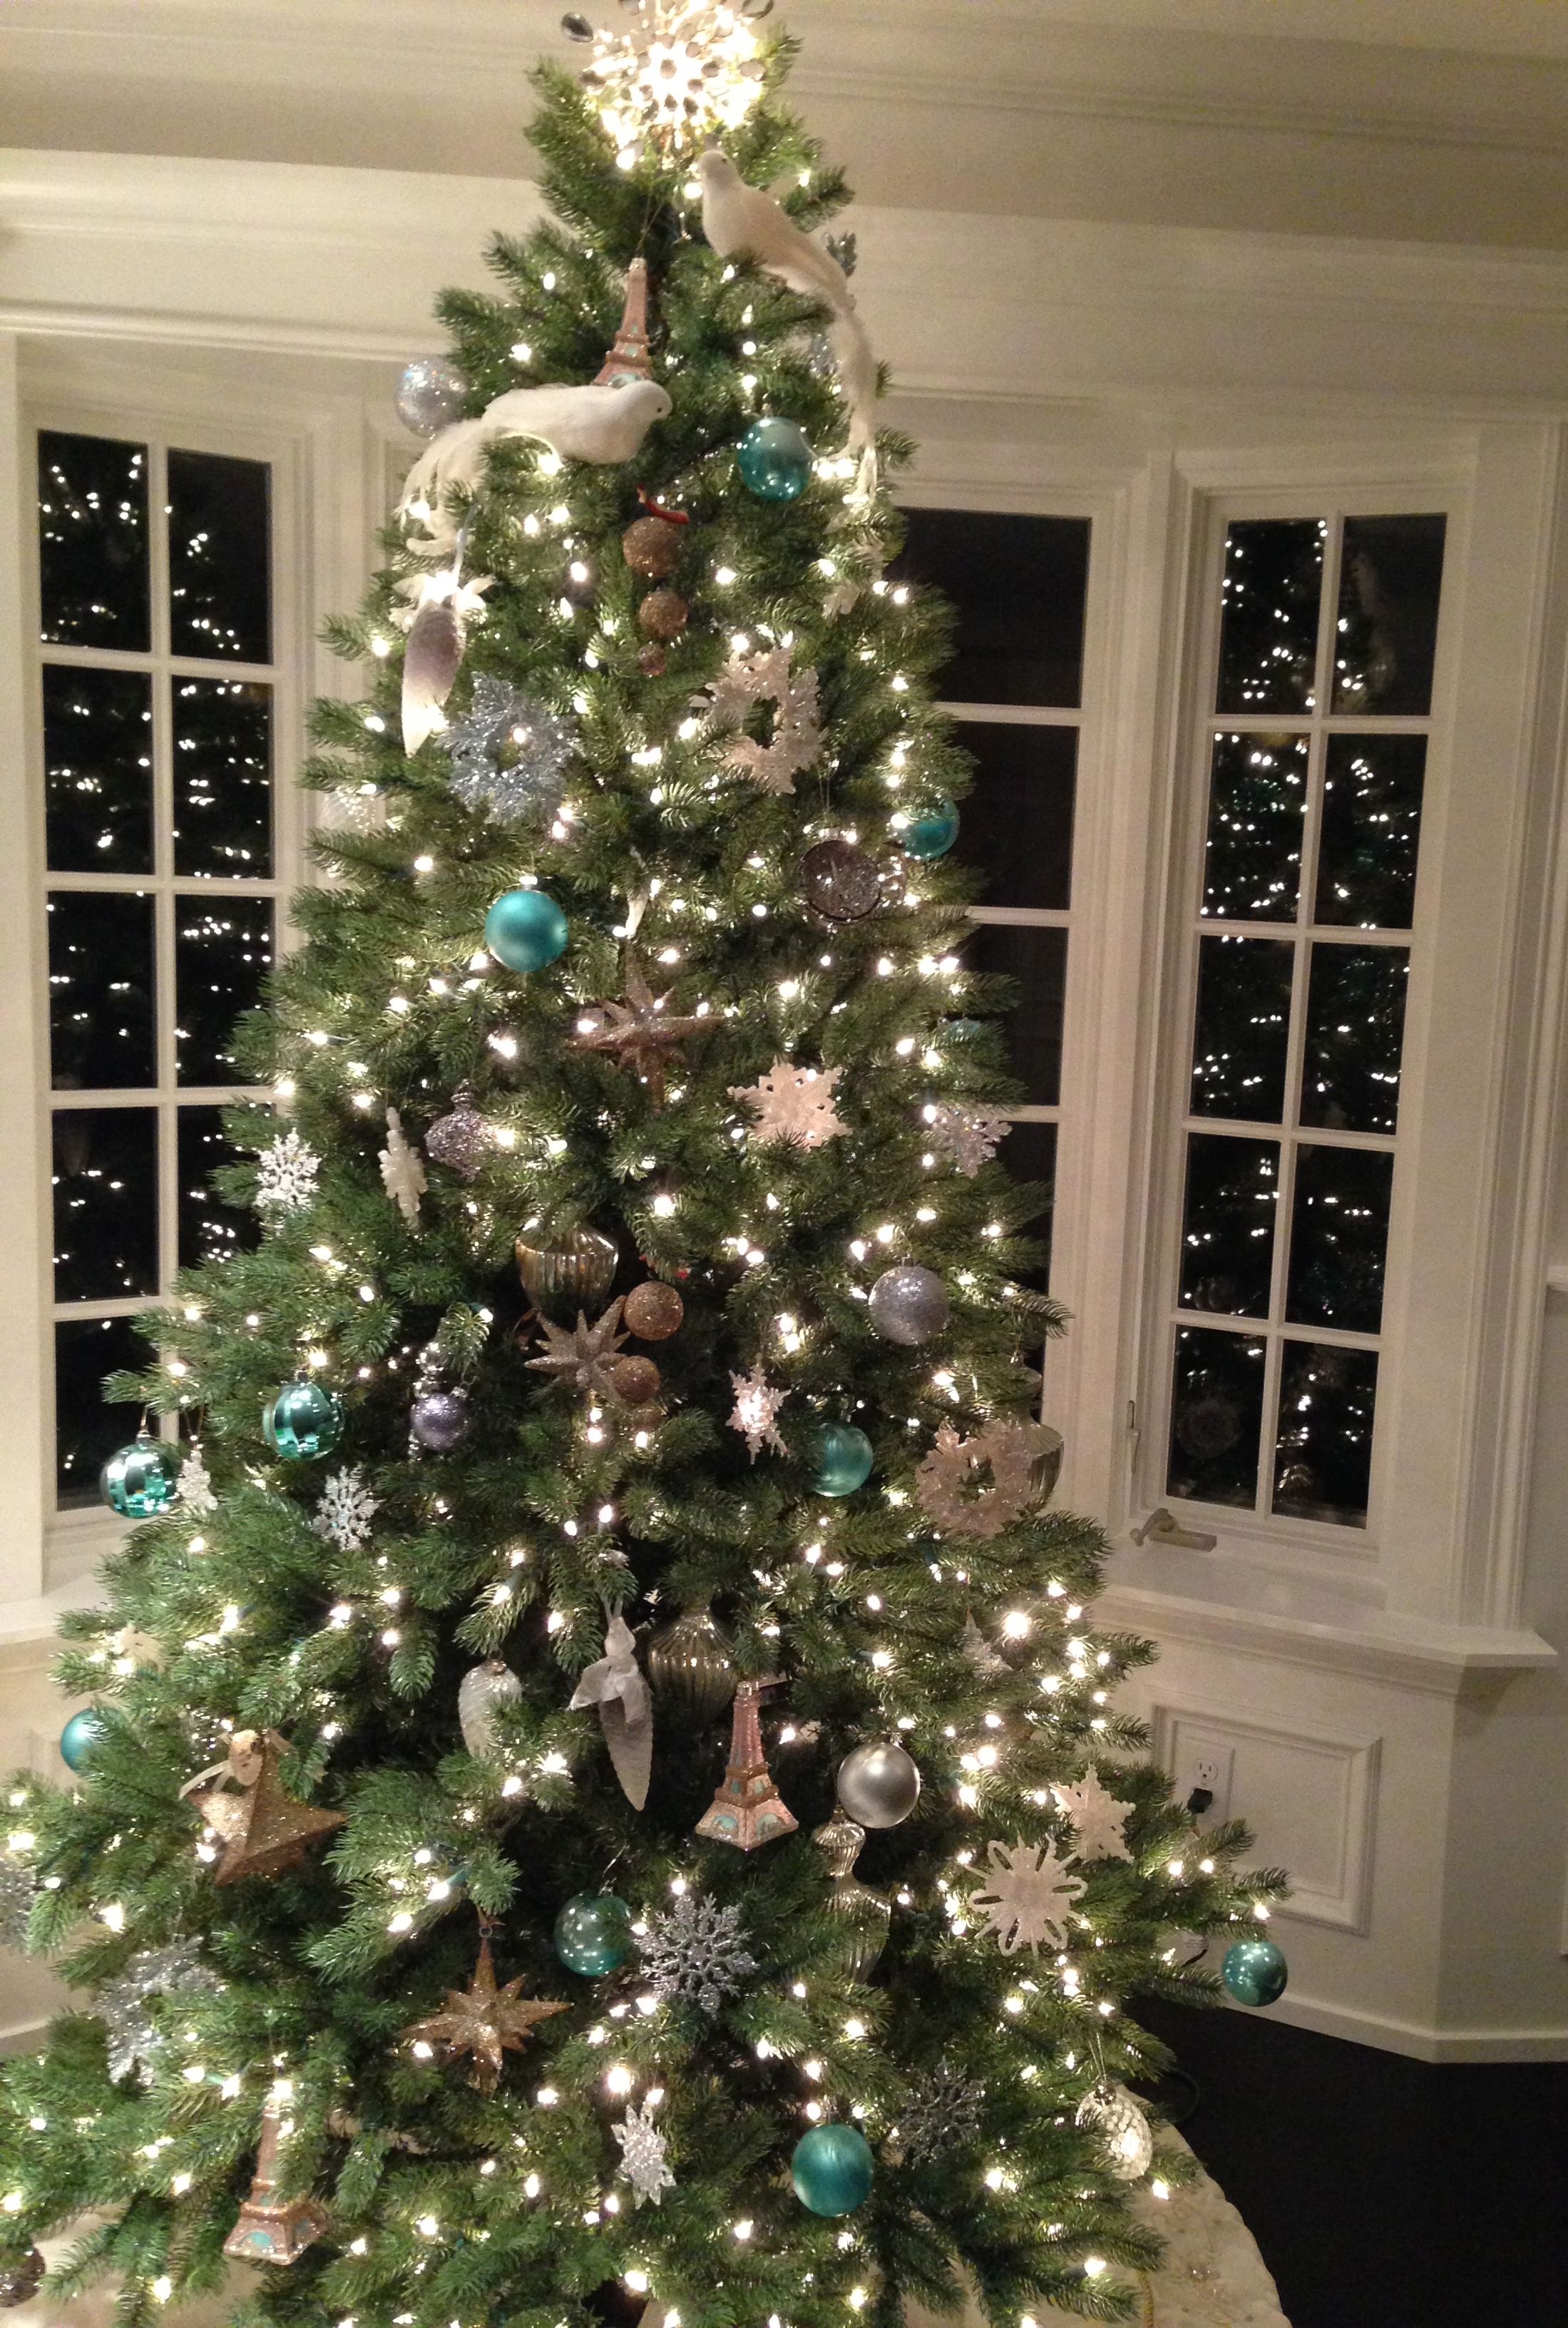 Silver, White and Blue Ornaments.